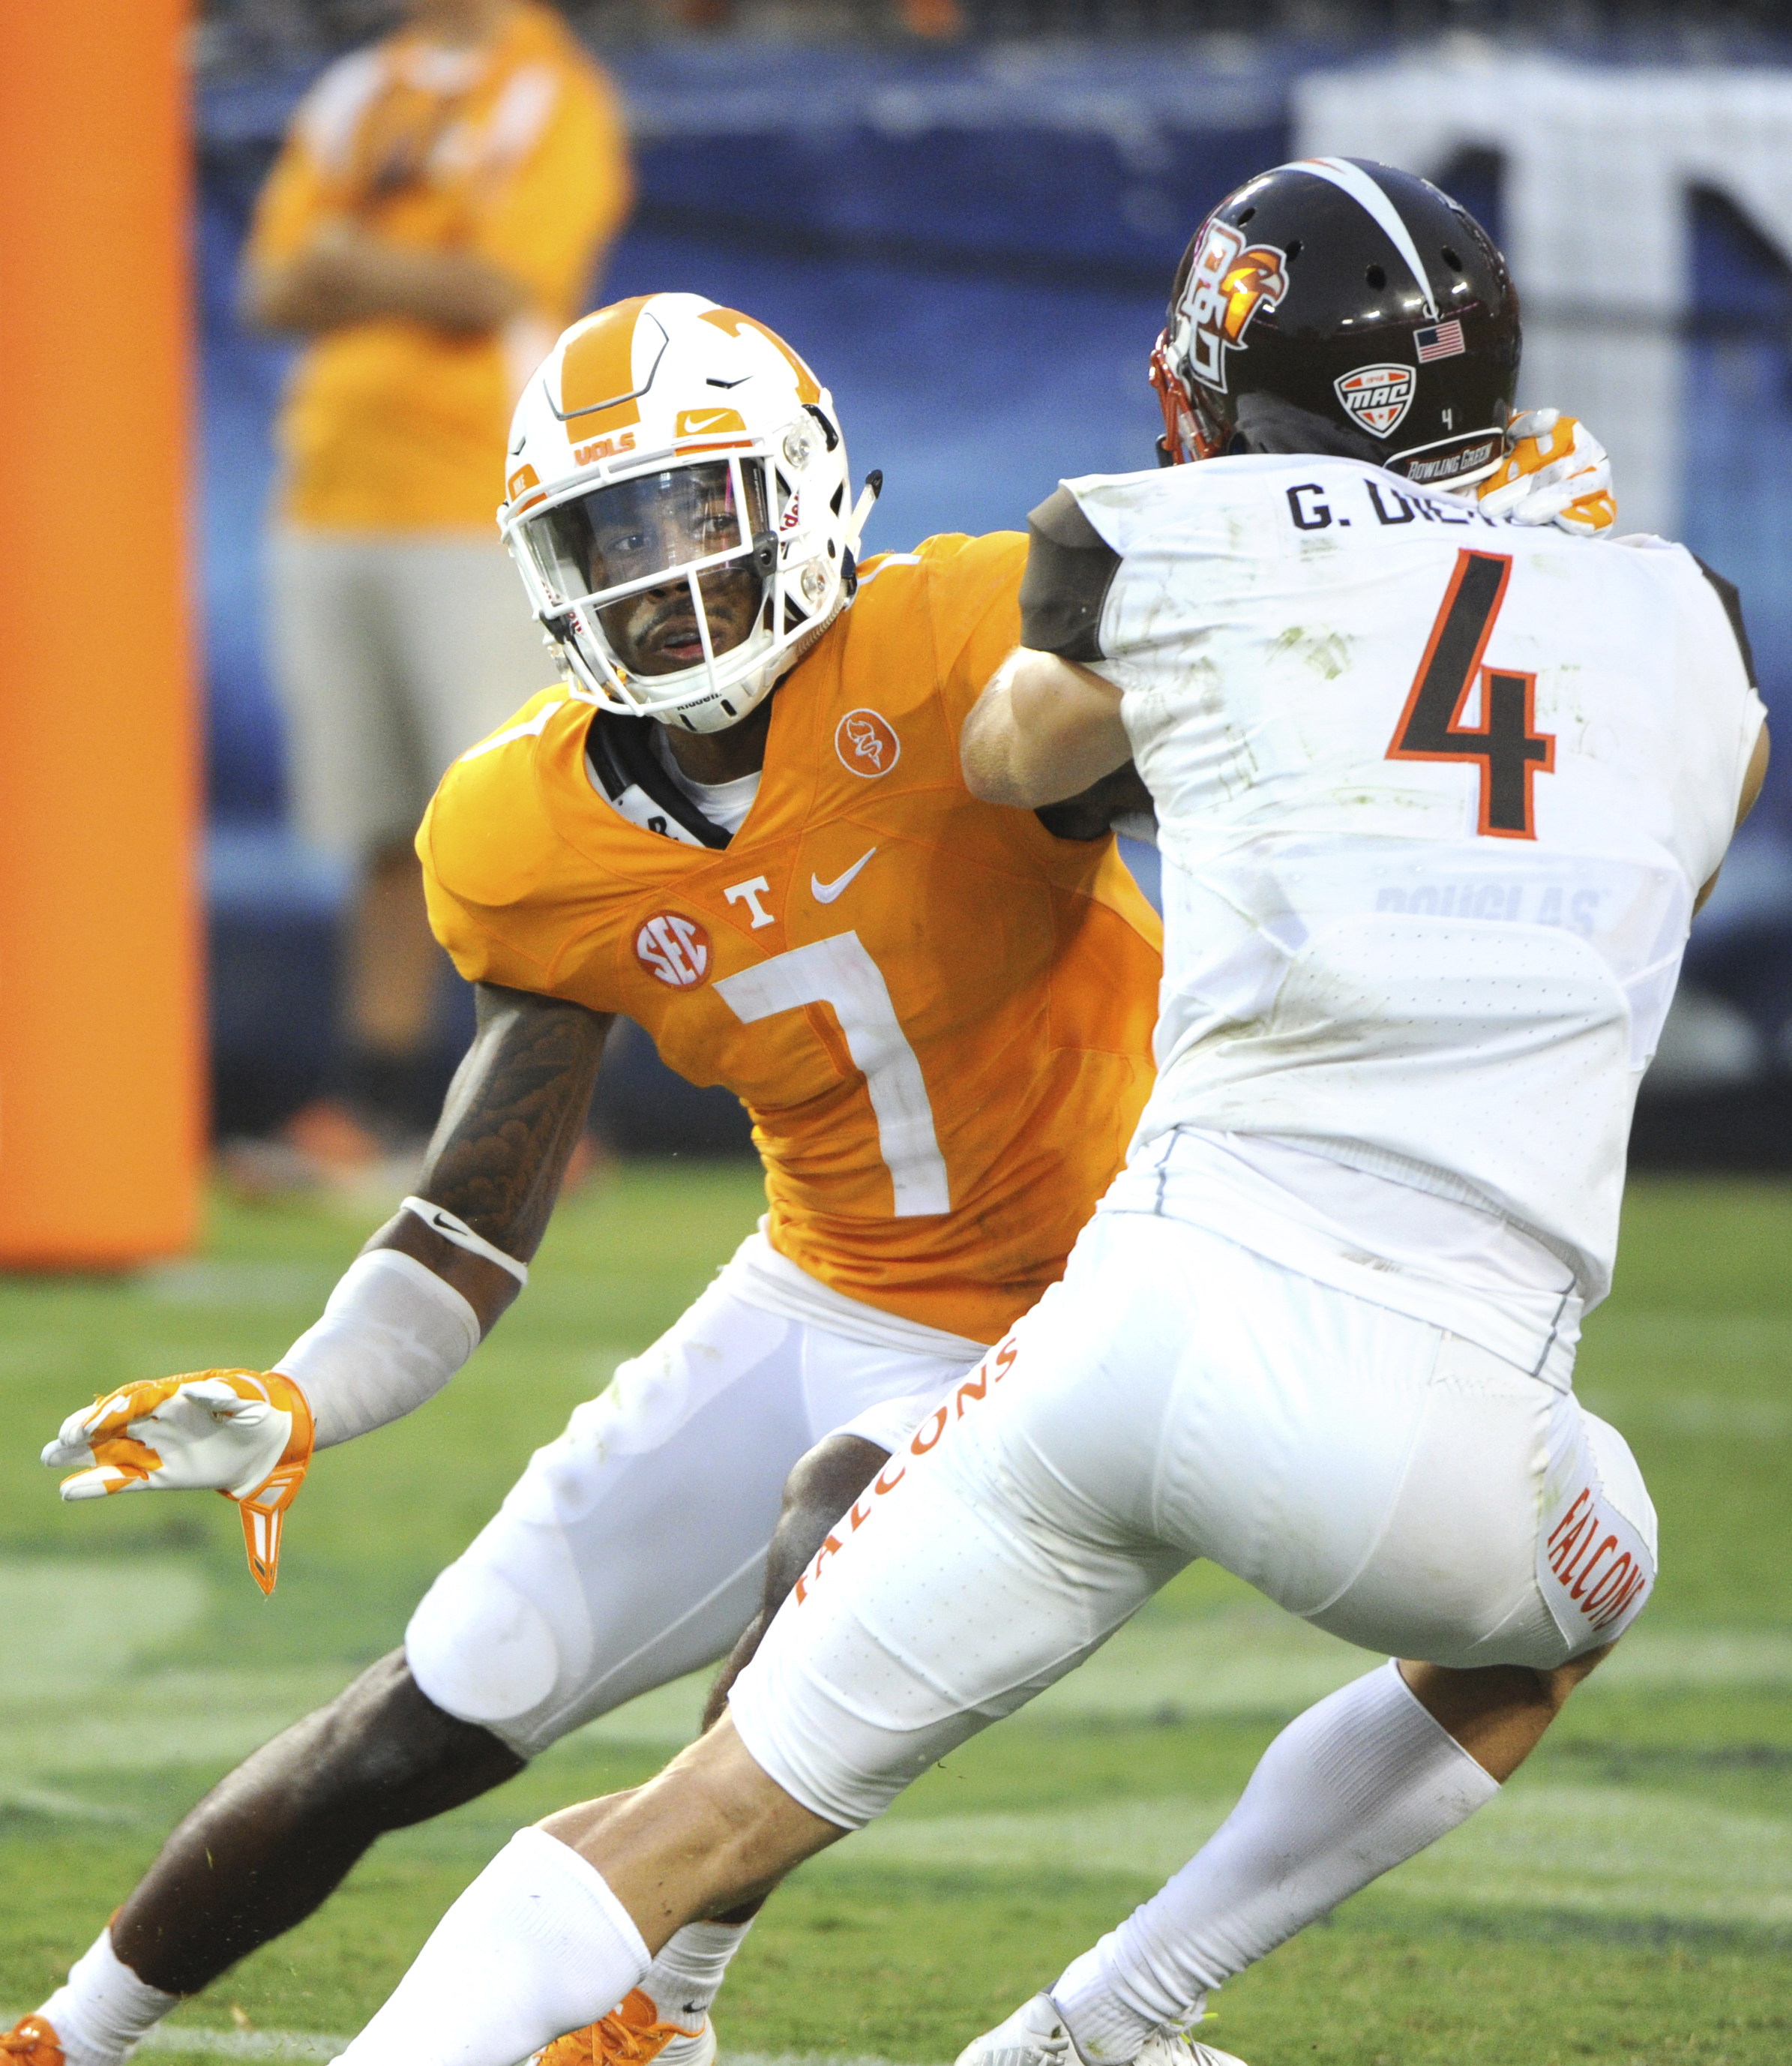 FILE - In this Sept. 5, 2015, file photo, Tennessee defensive back Cameron Sutton, left, covers Bowling Green wide receiver Gehrig Dieter during an NCAA college football game in Nashville, Tenn. After beginning their college careers by experiencing losing